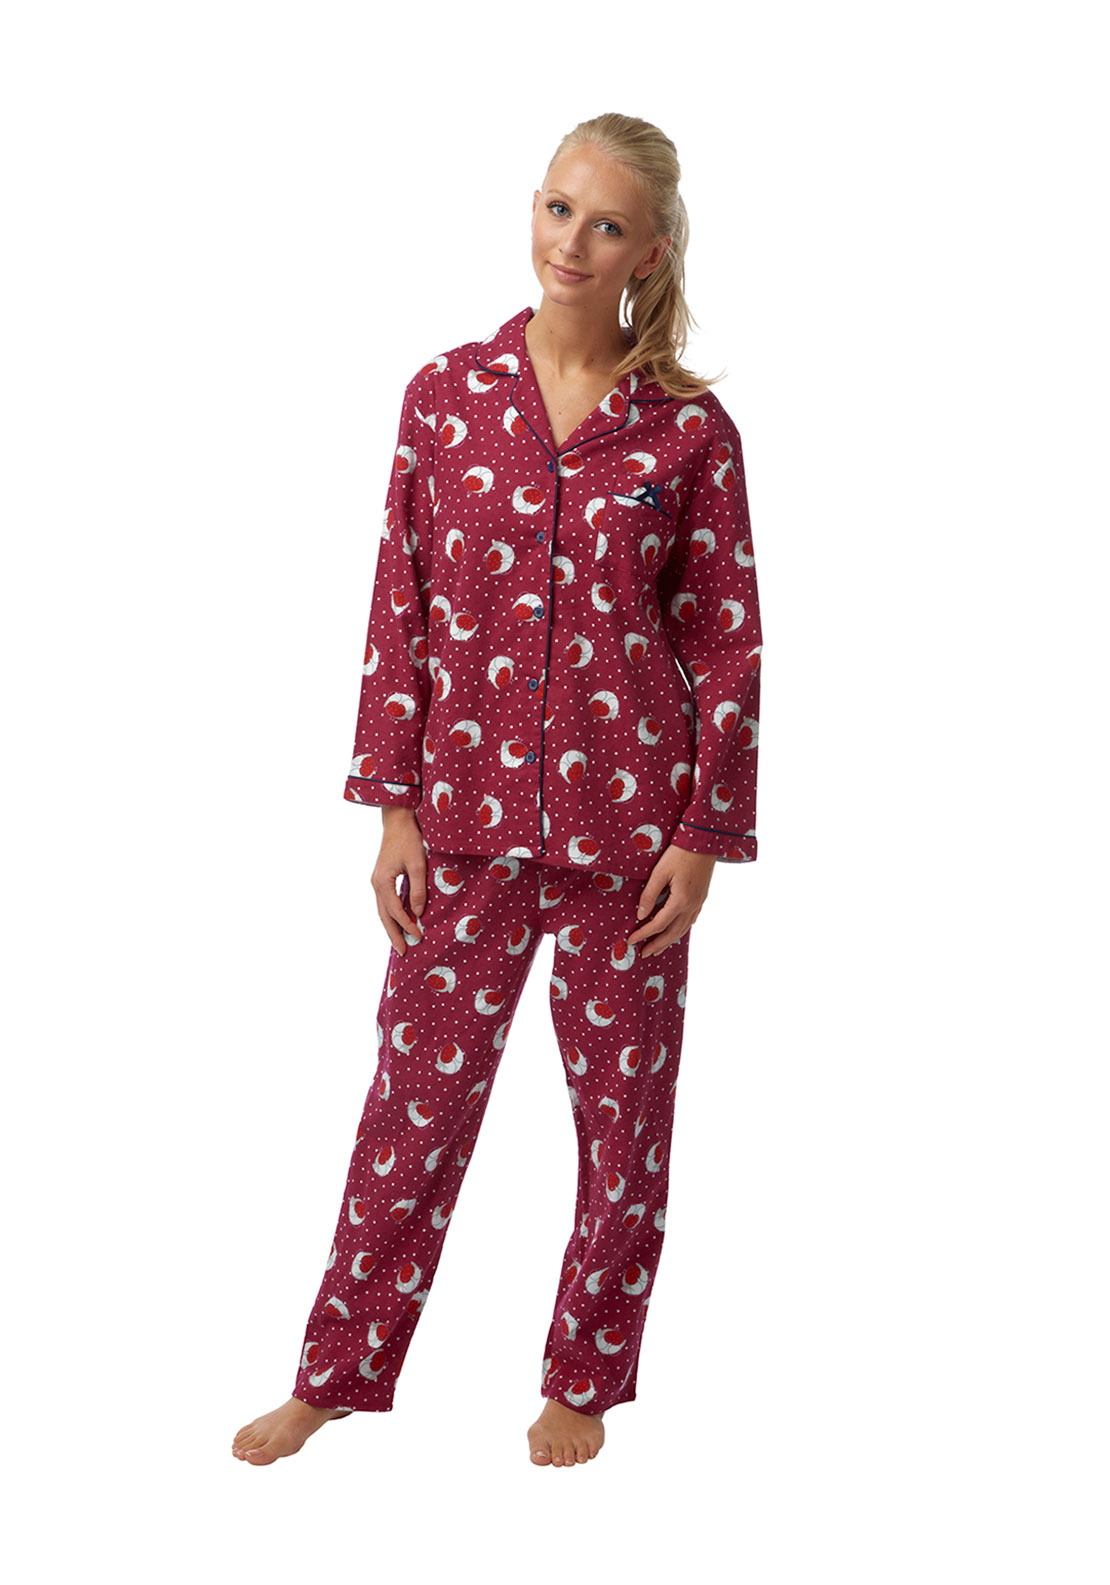 Indigo Sky Robin Print Brushed Cotton Pyjama Set, Wine